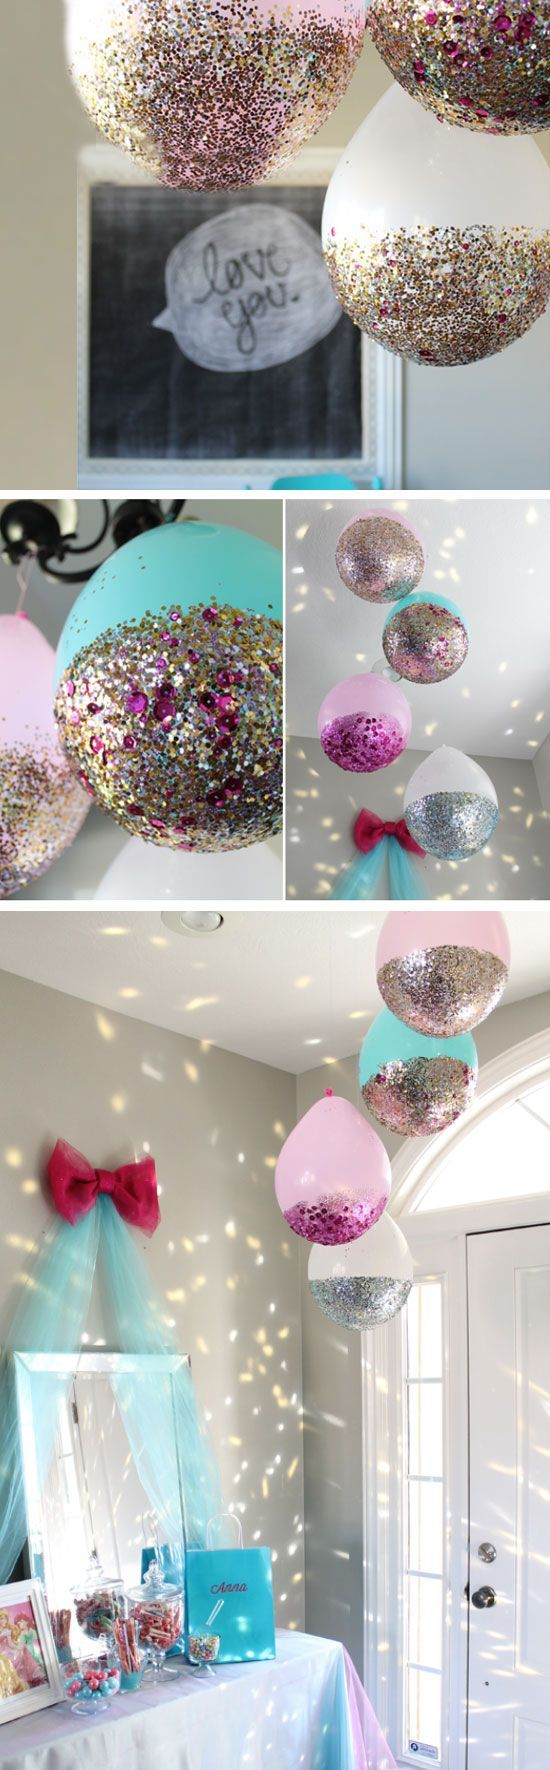 How amazing are this glitter coated balloons?! Perfect for a kids party!